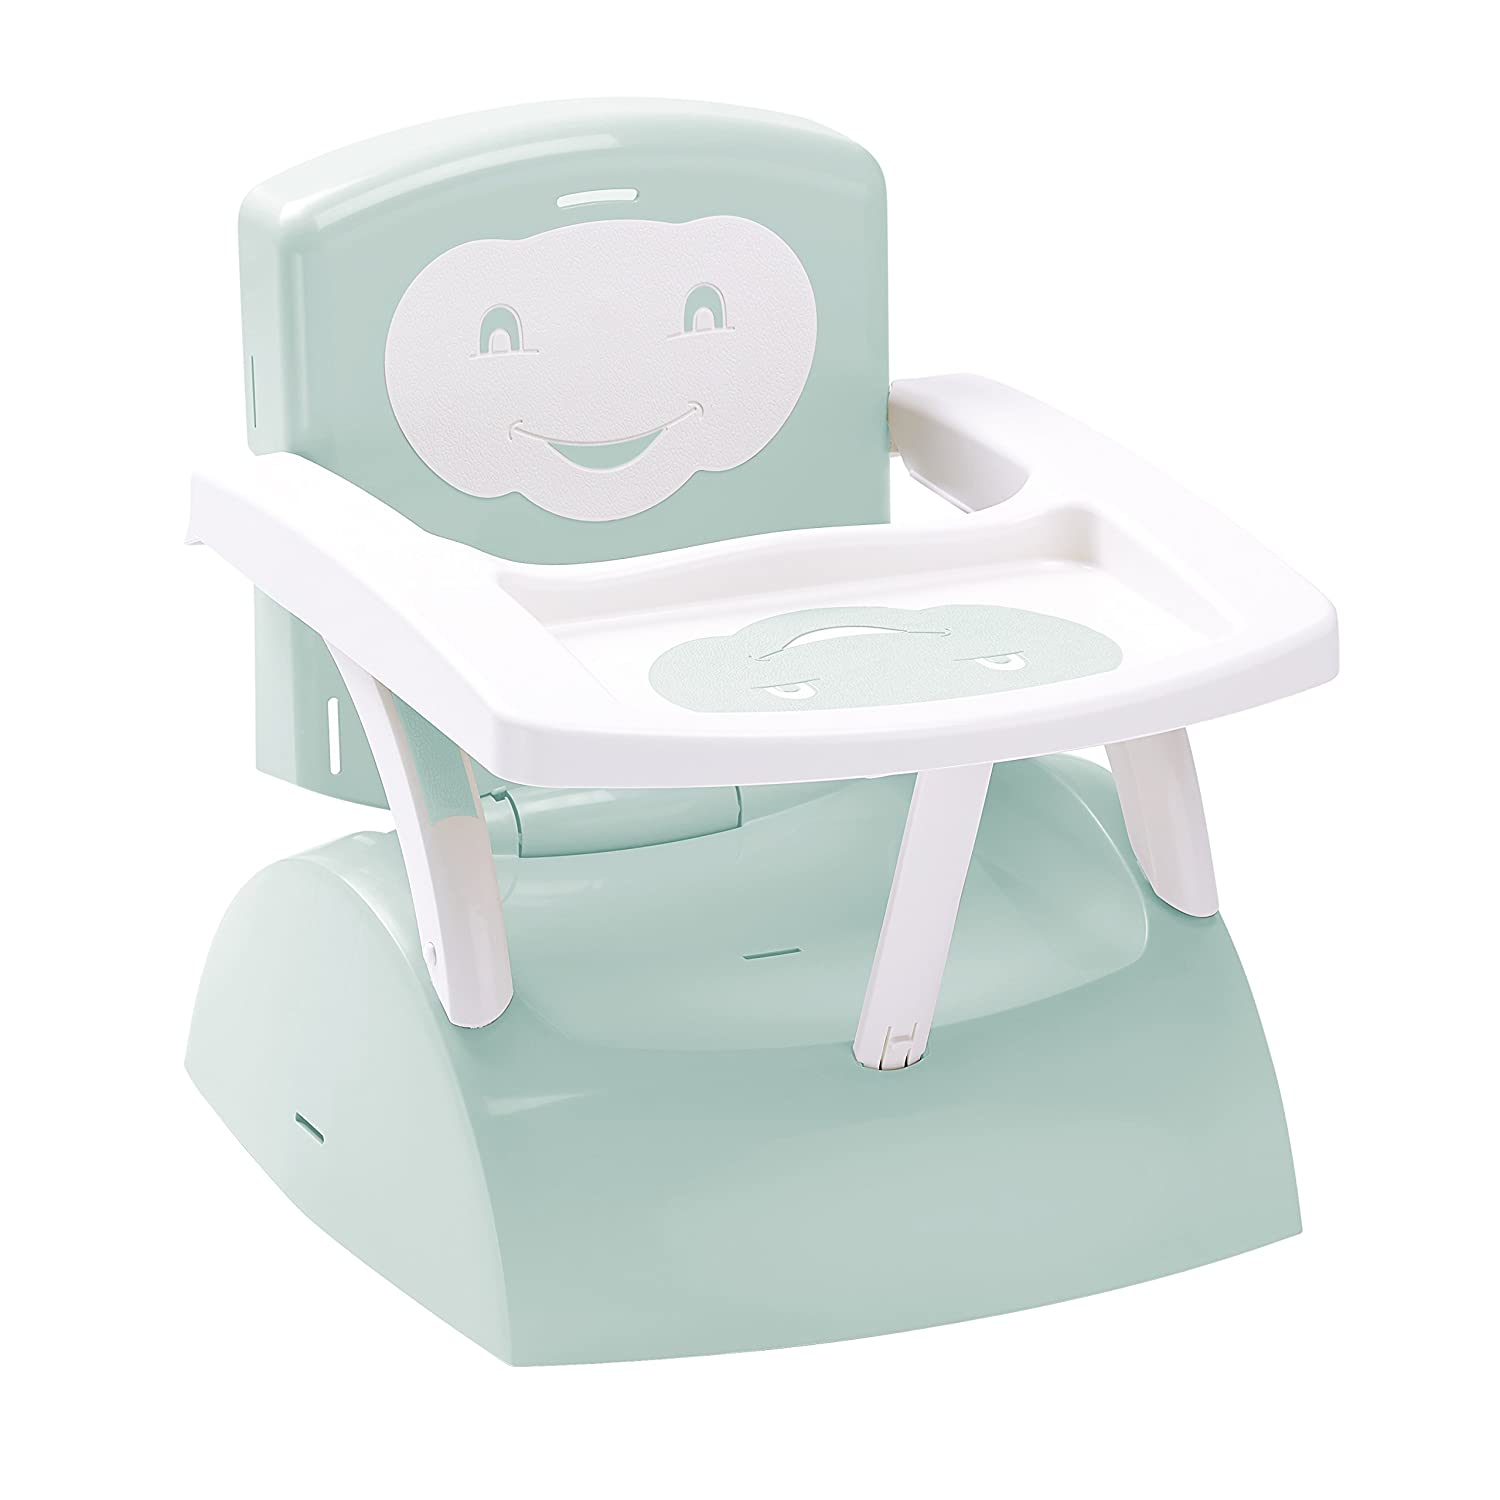 THERMOBABY Babytop Rehausseur de Chaise Vert Céladon THHHJ 2198573